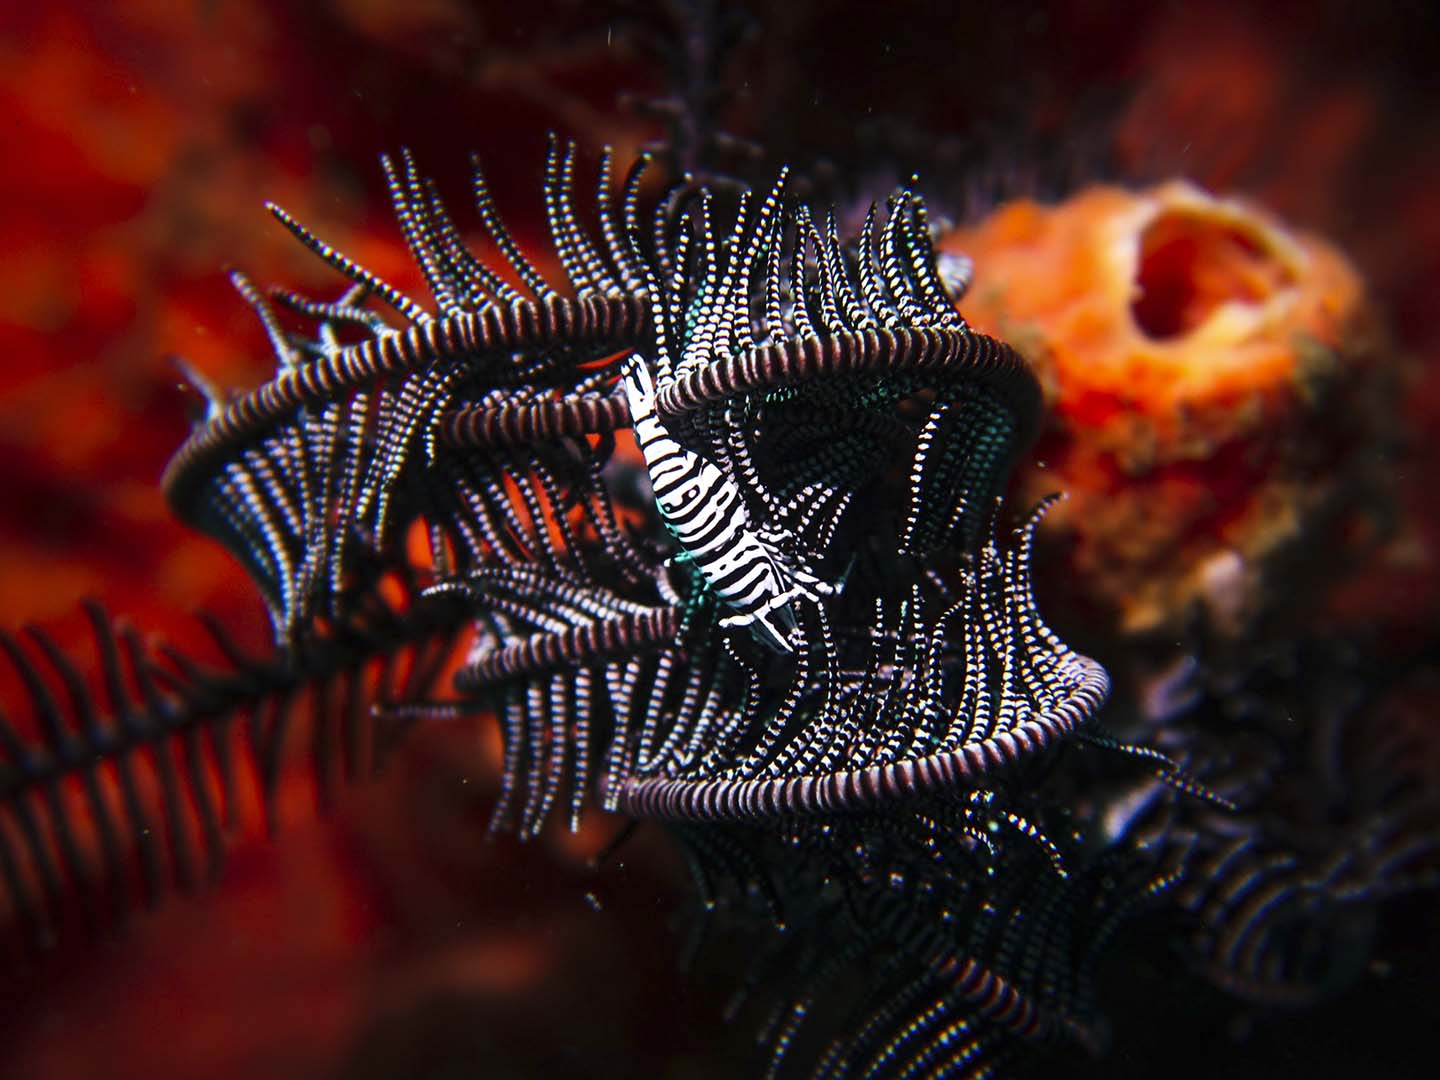 Black and White crinoid shrimp while scuba diving in Dauin